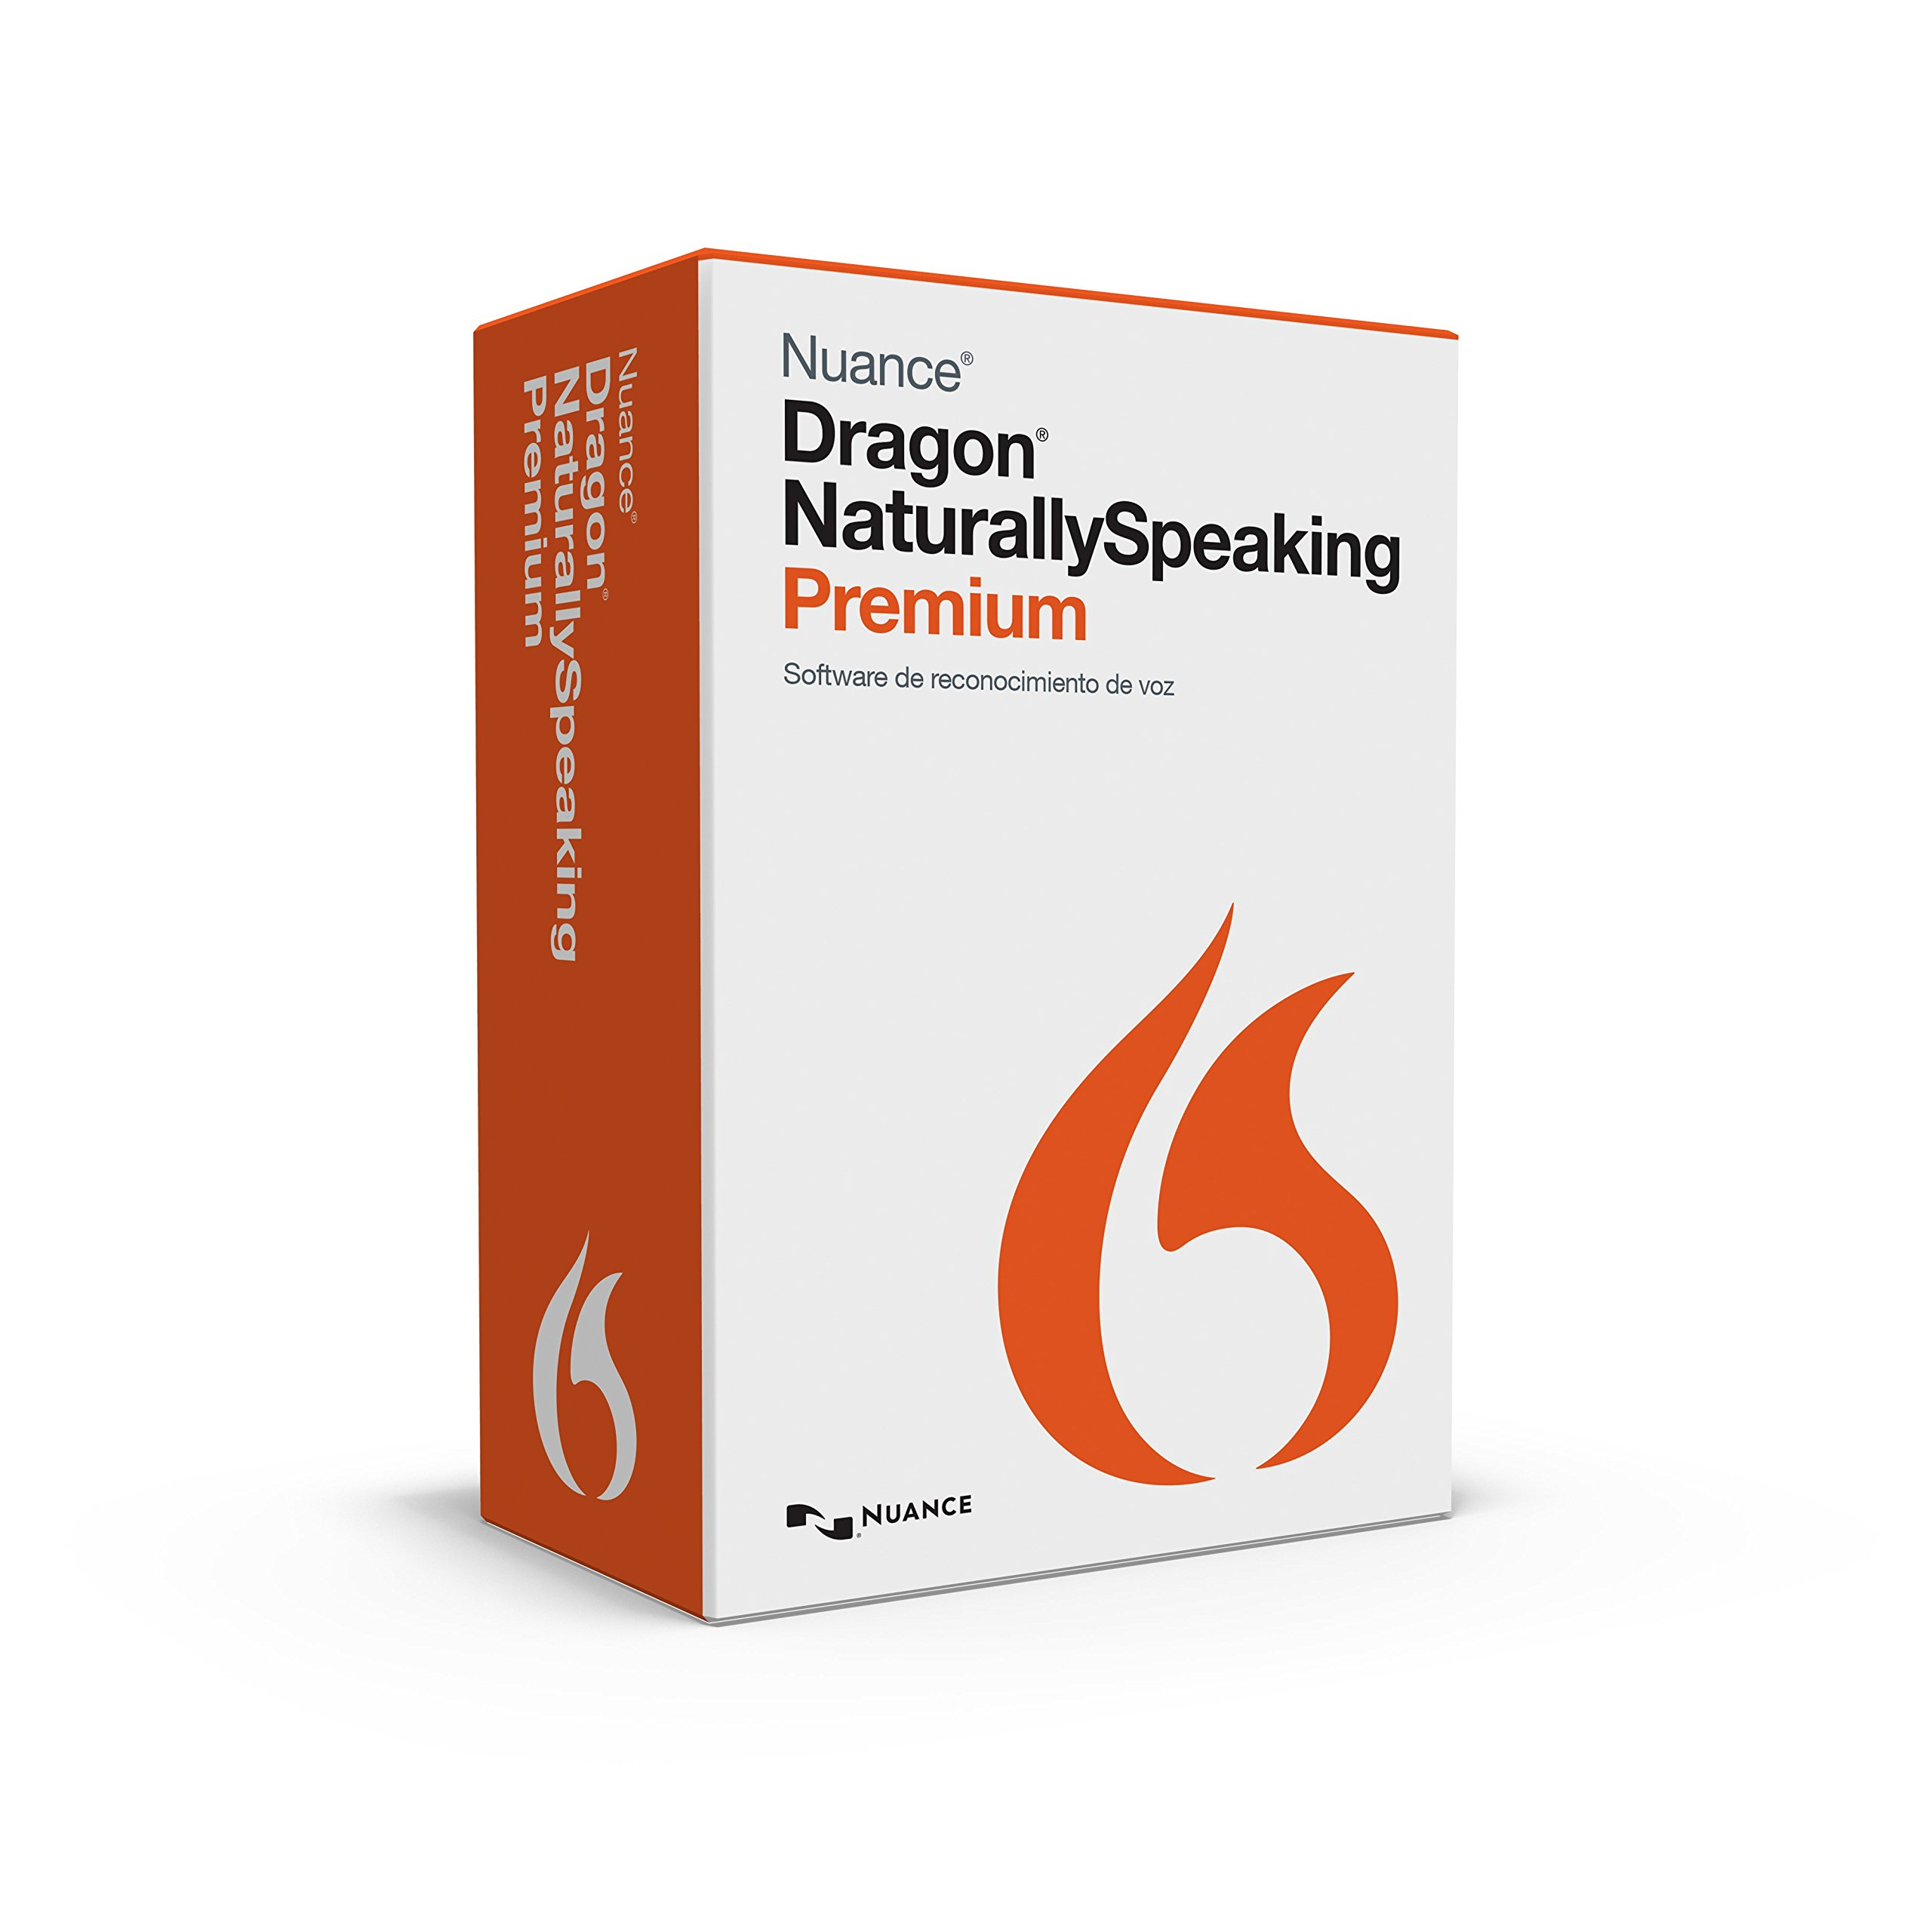 Dragon NaturallySpeaking Premium 13, Spanish (Discontinued) by Nuance Dragon